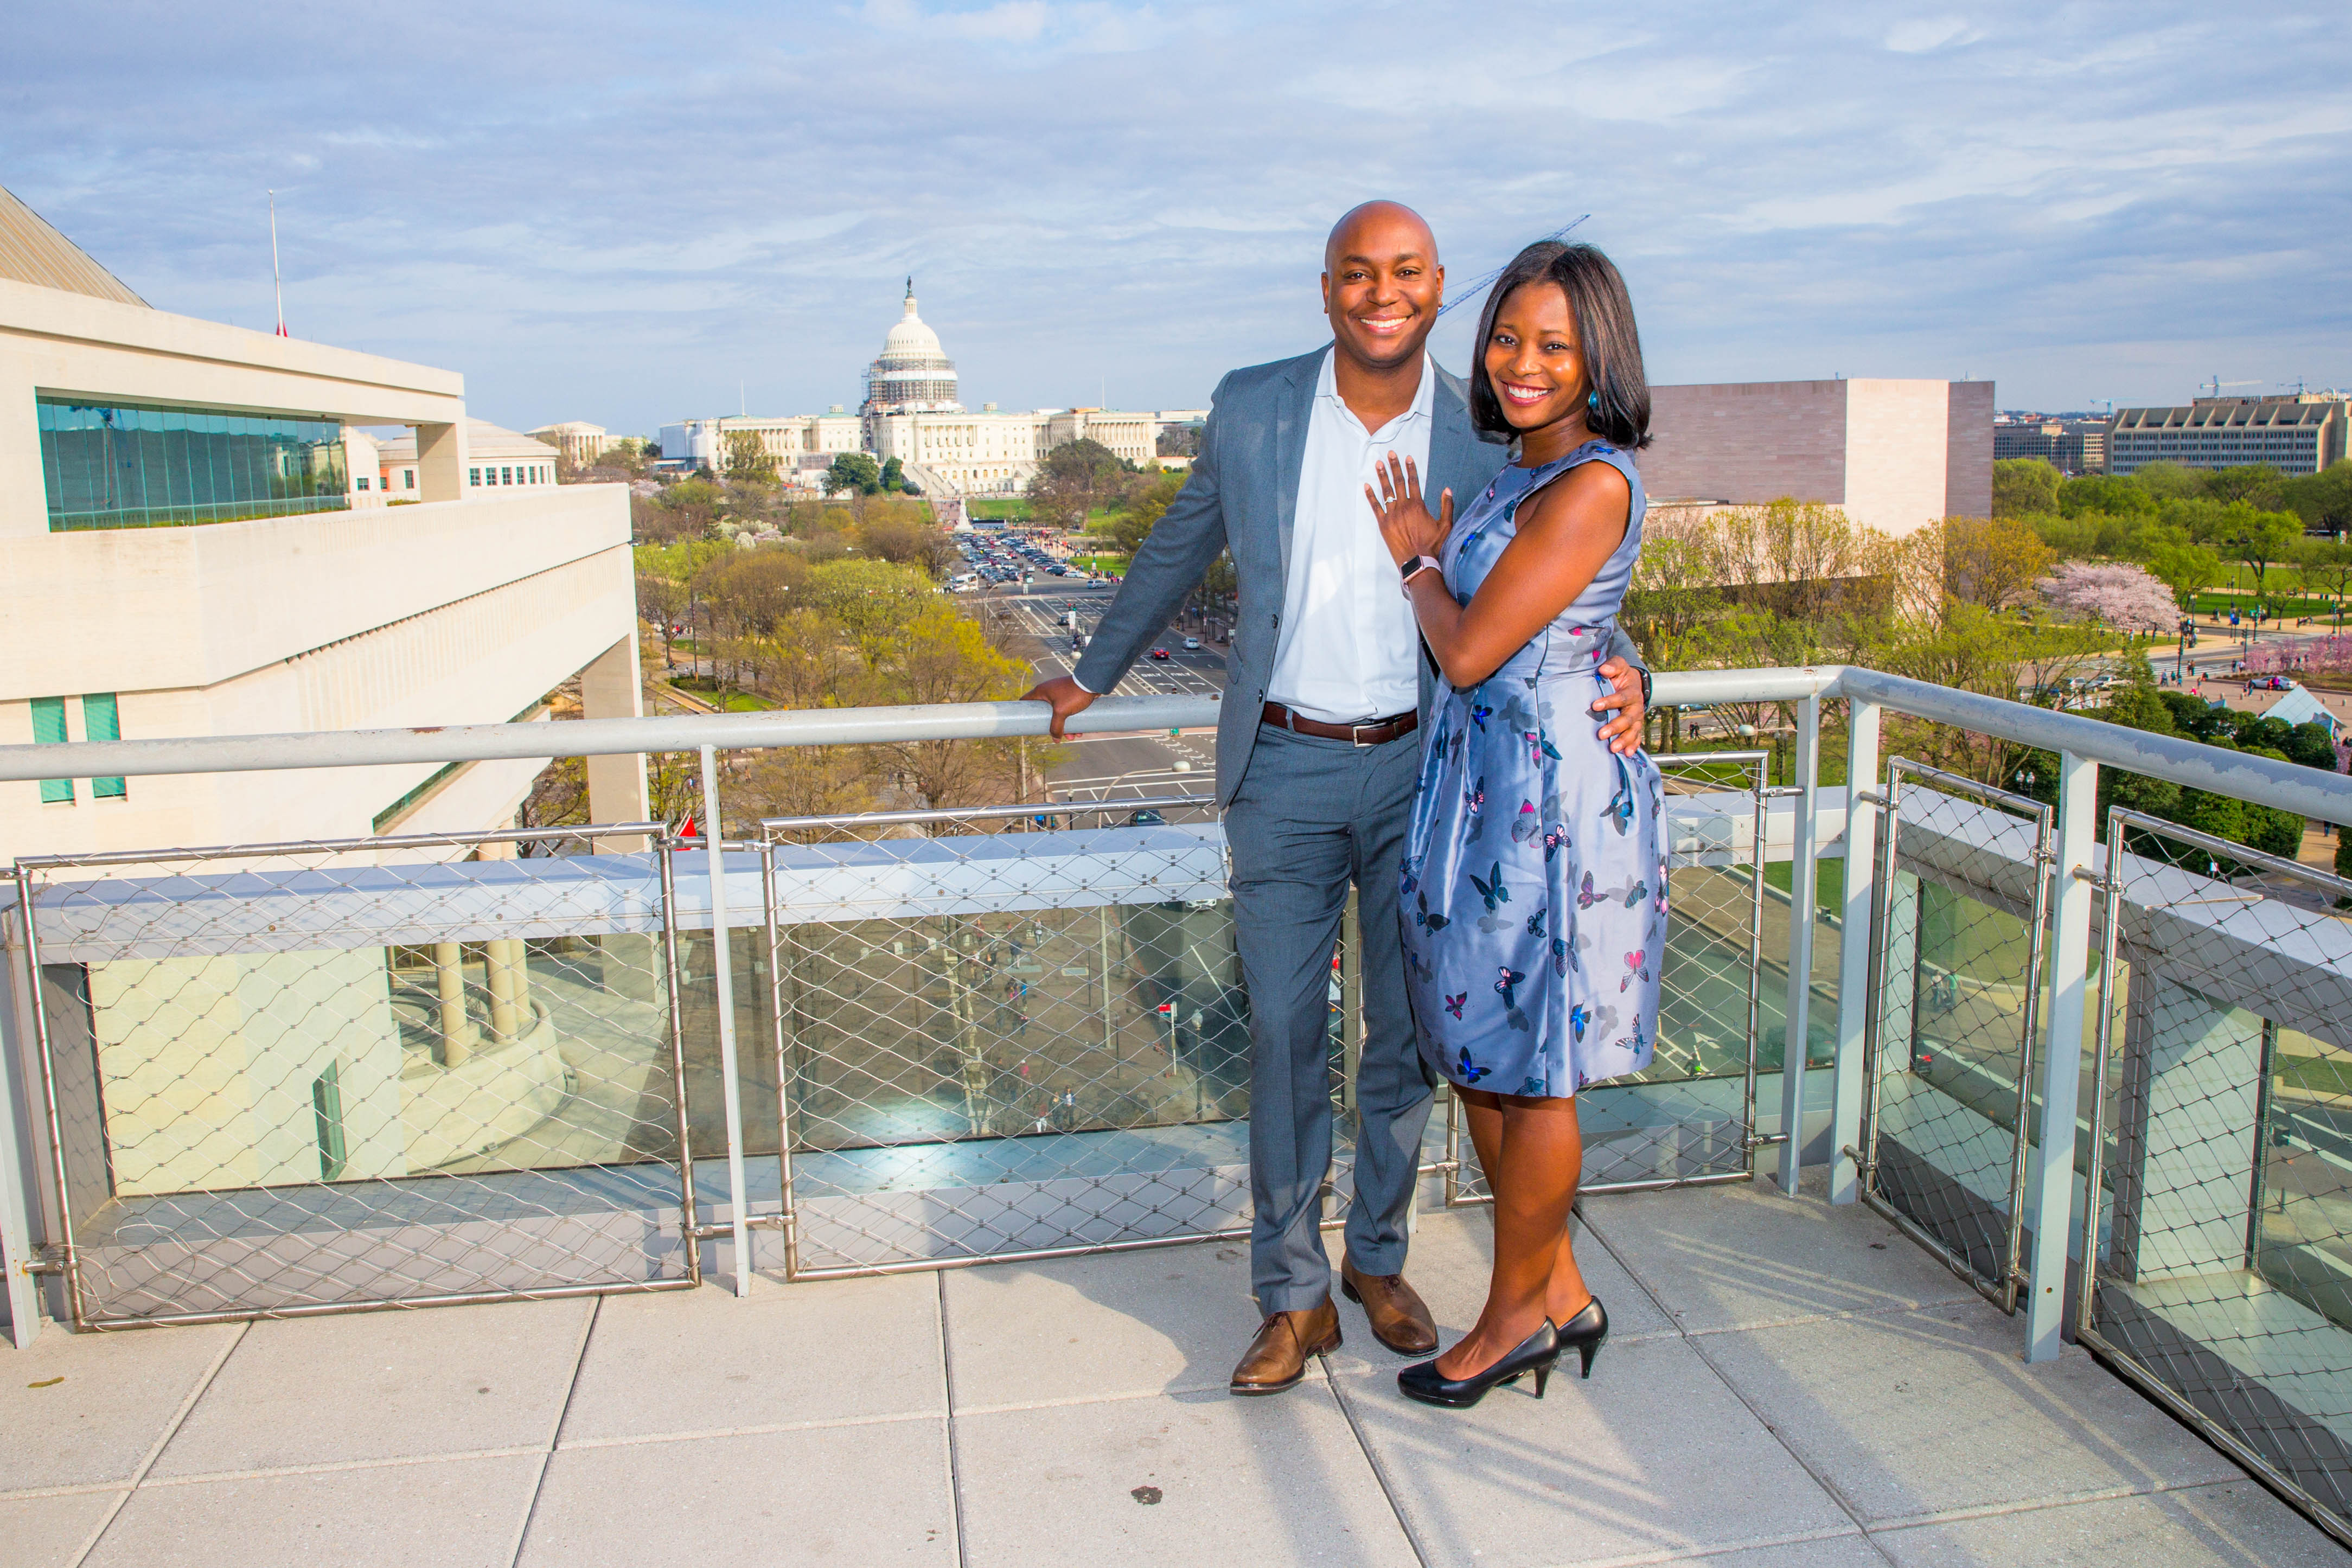 Darren and jummy surprise engagement photo shoot at newseum for Surprise engagement photo shoot